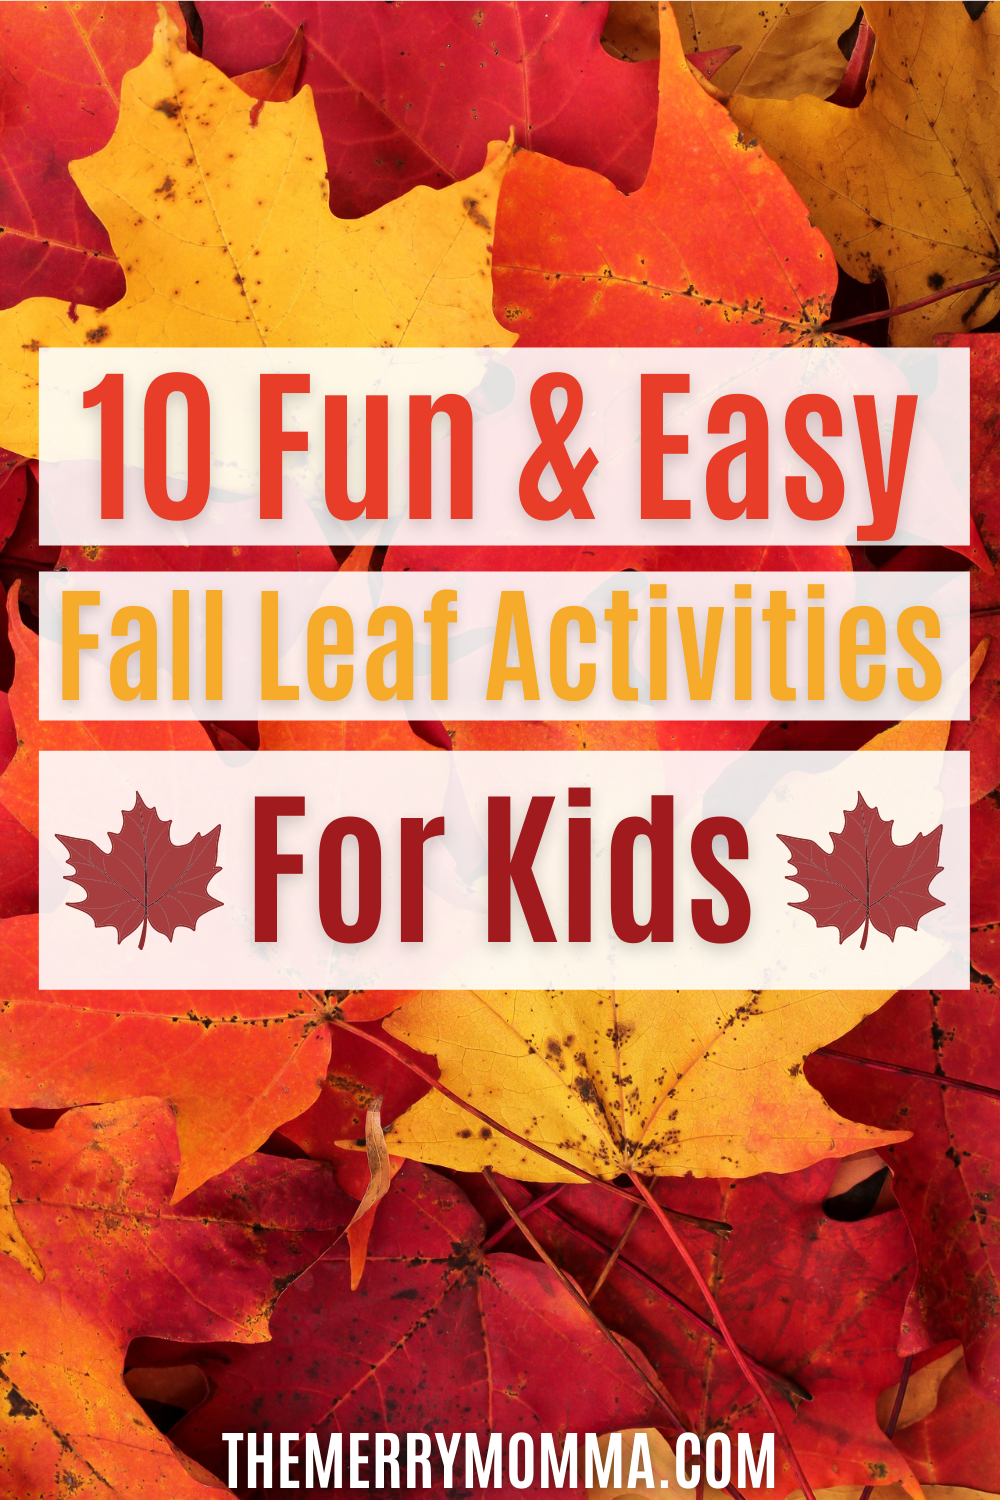 10 Fun & Easy Fall Leaf Activities for Kids PIN